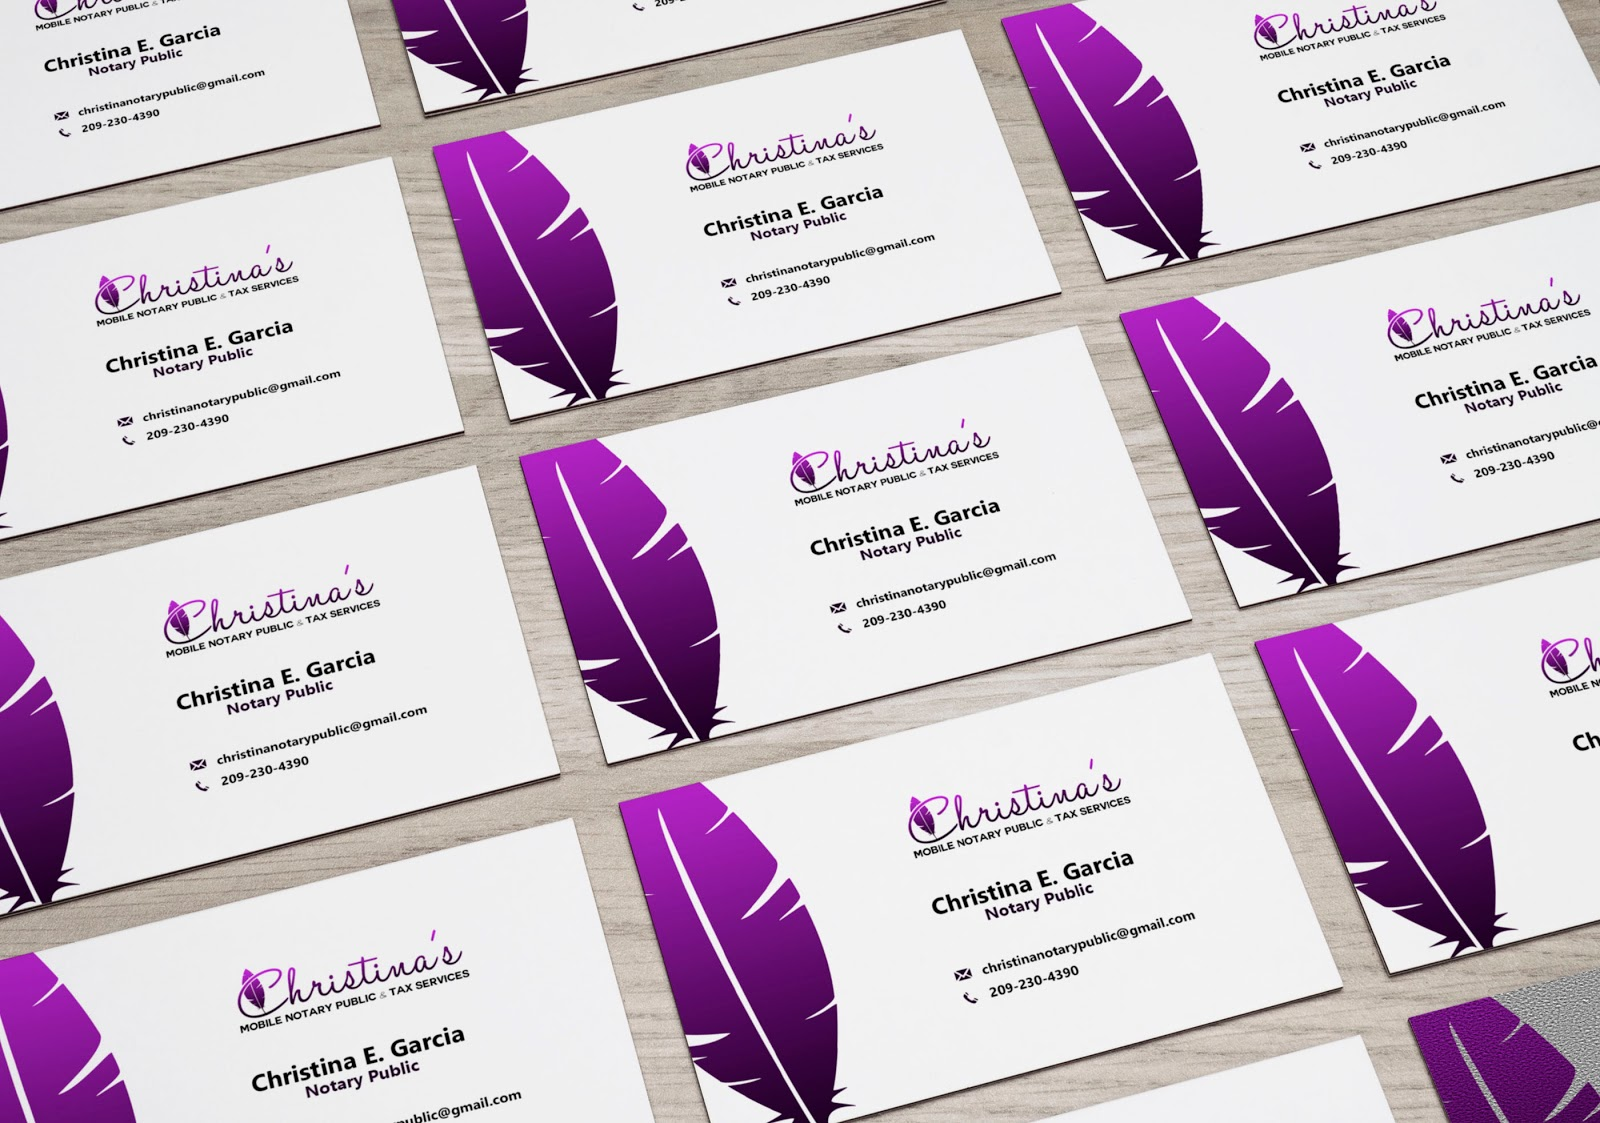 Tax Services Business Cards Gallery - Free Business Cards